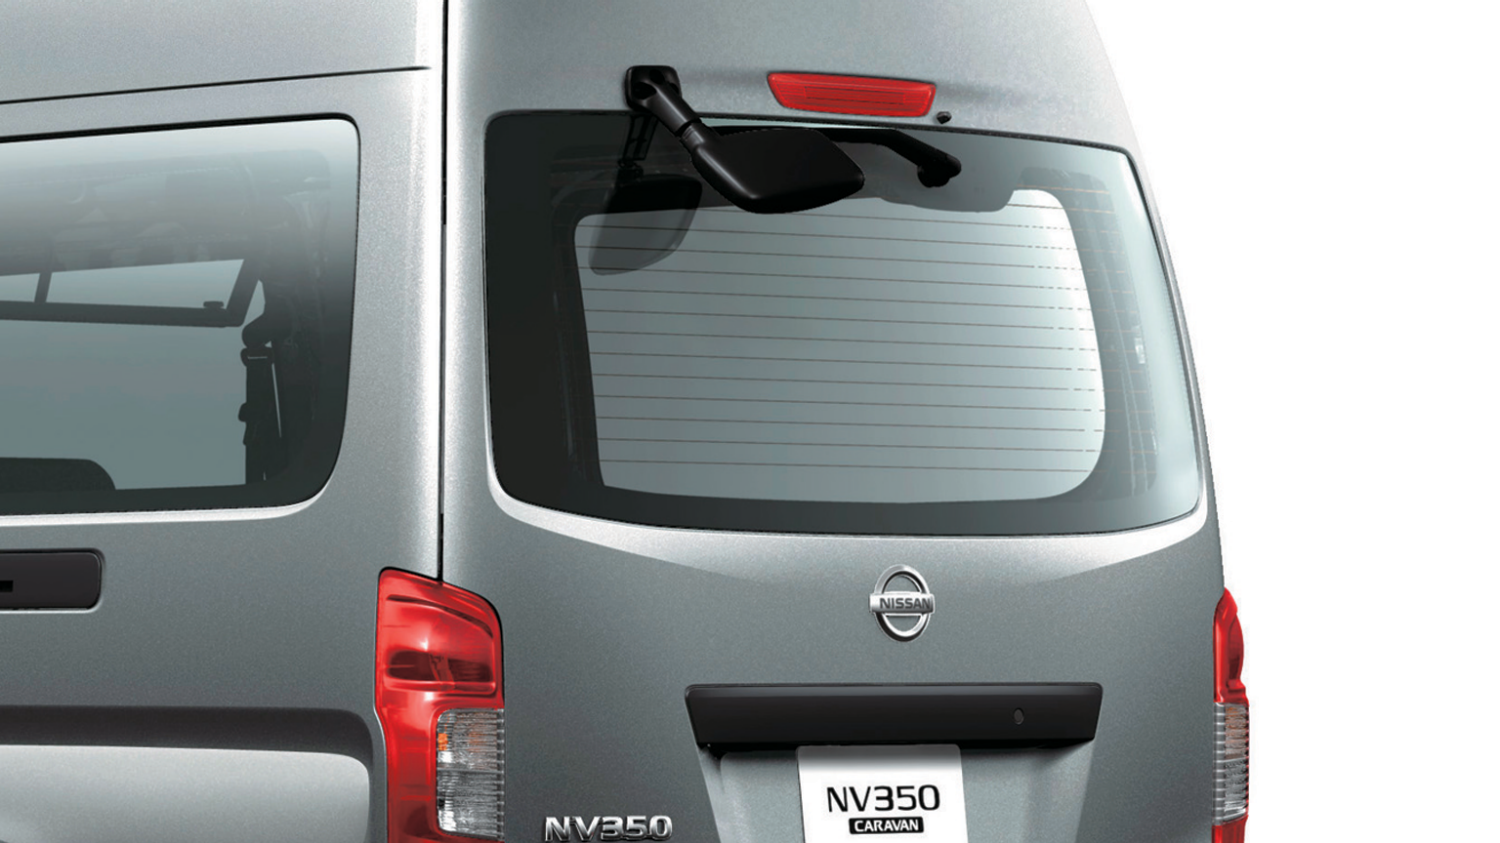 REAR UNDER-VIEW MIRROR, REAR WIPER AND DEFROSTERS